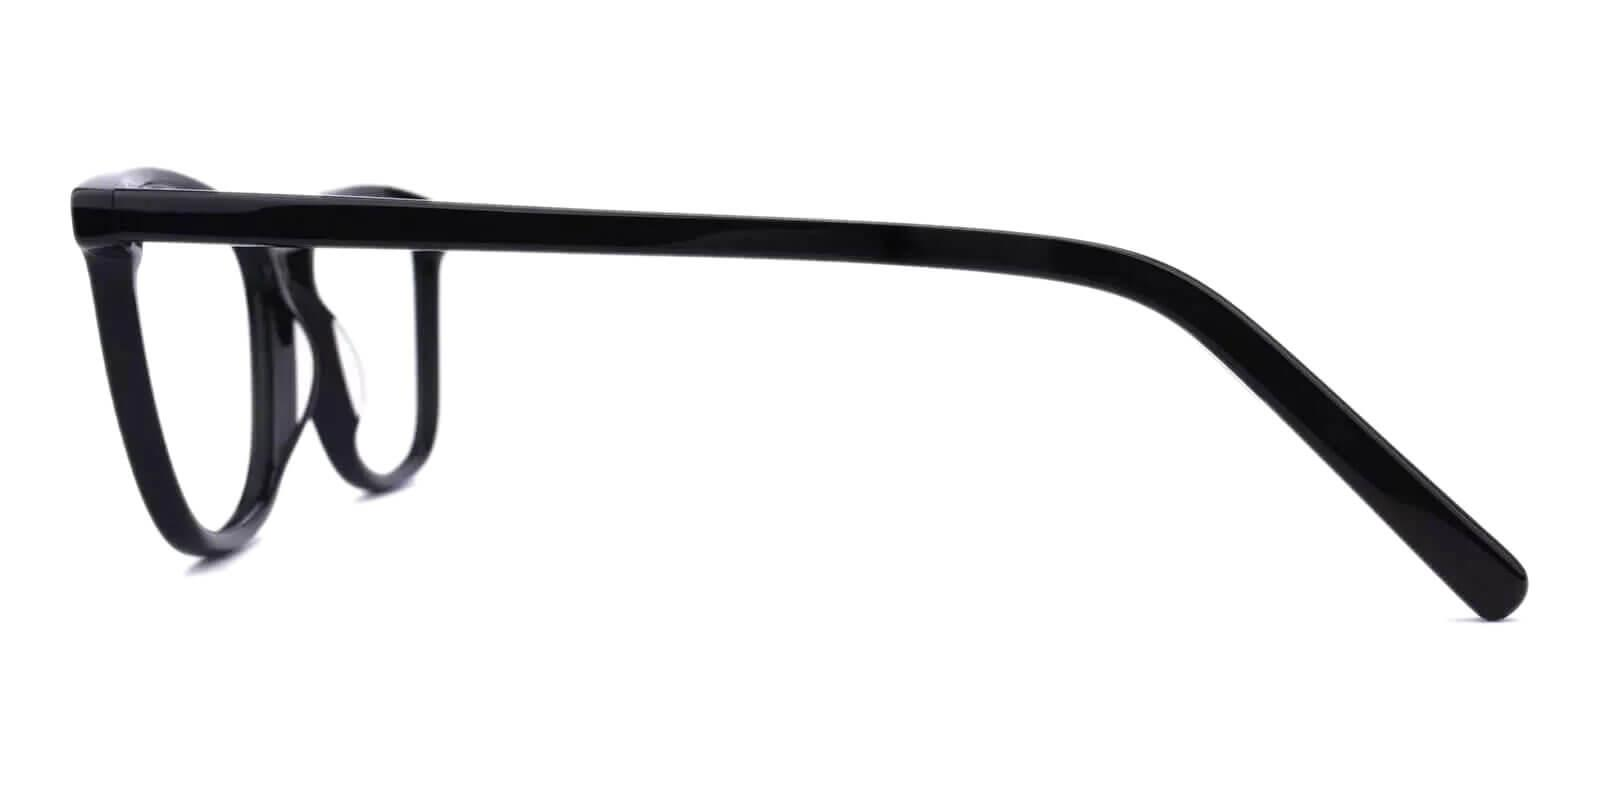 Belize Black Acetate Eyeglasses , SpringHinges , UniversalBridgeFit Frames from ABBE Glasses